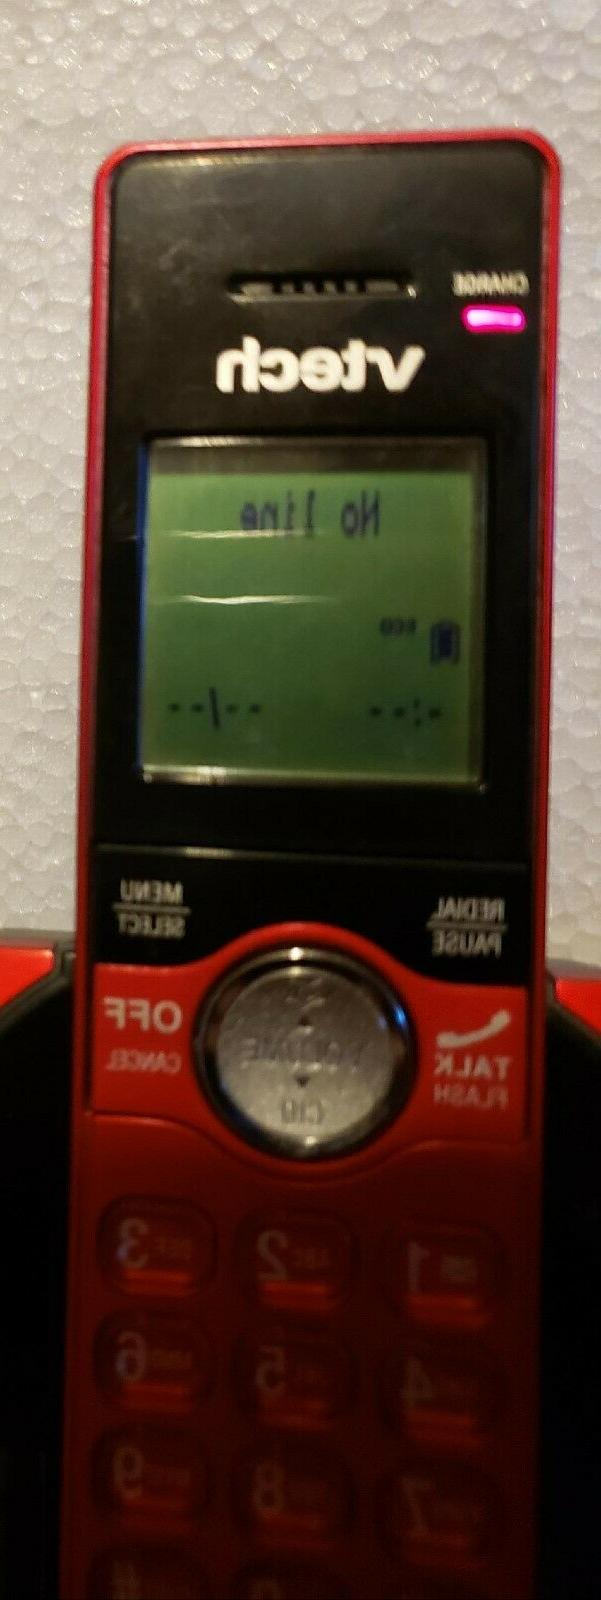 VTech Cordless Phone Digital Answering System WITHOUT BOX